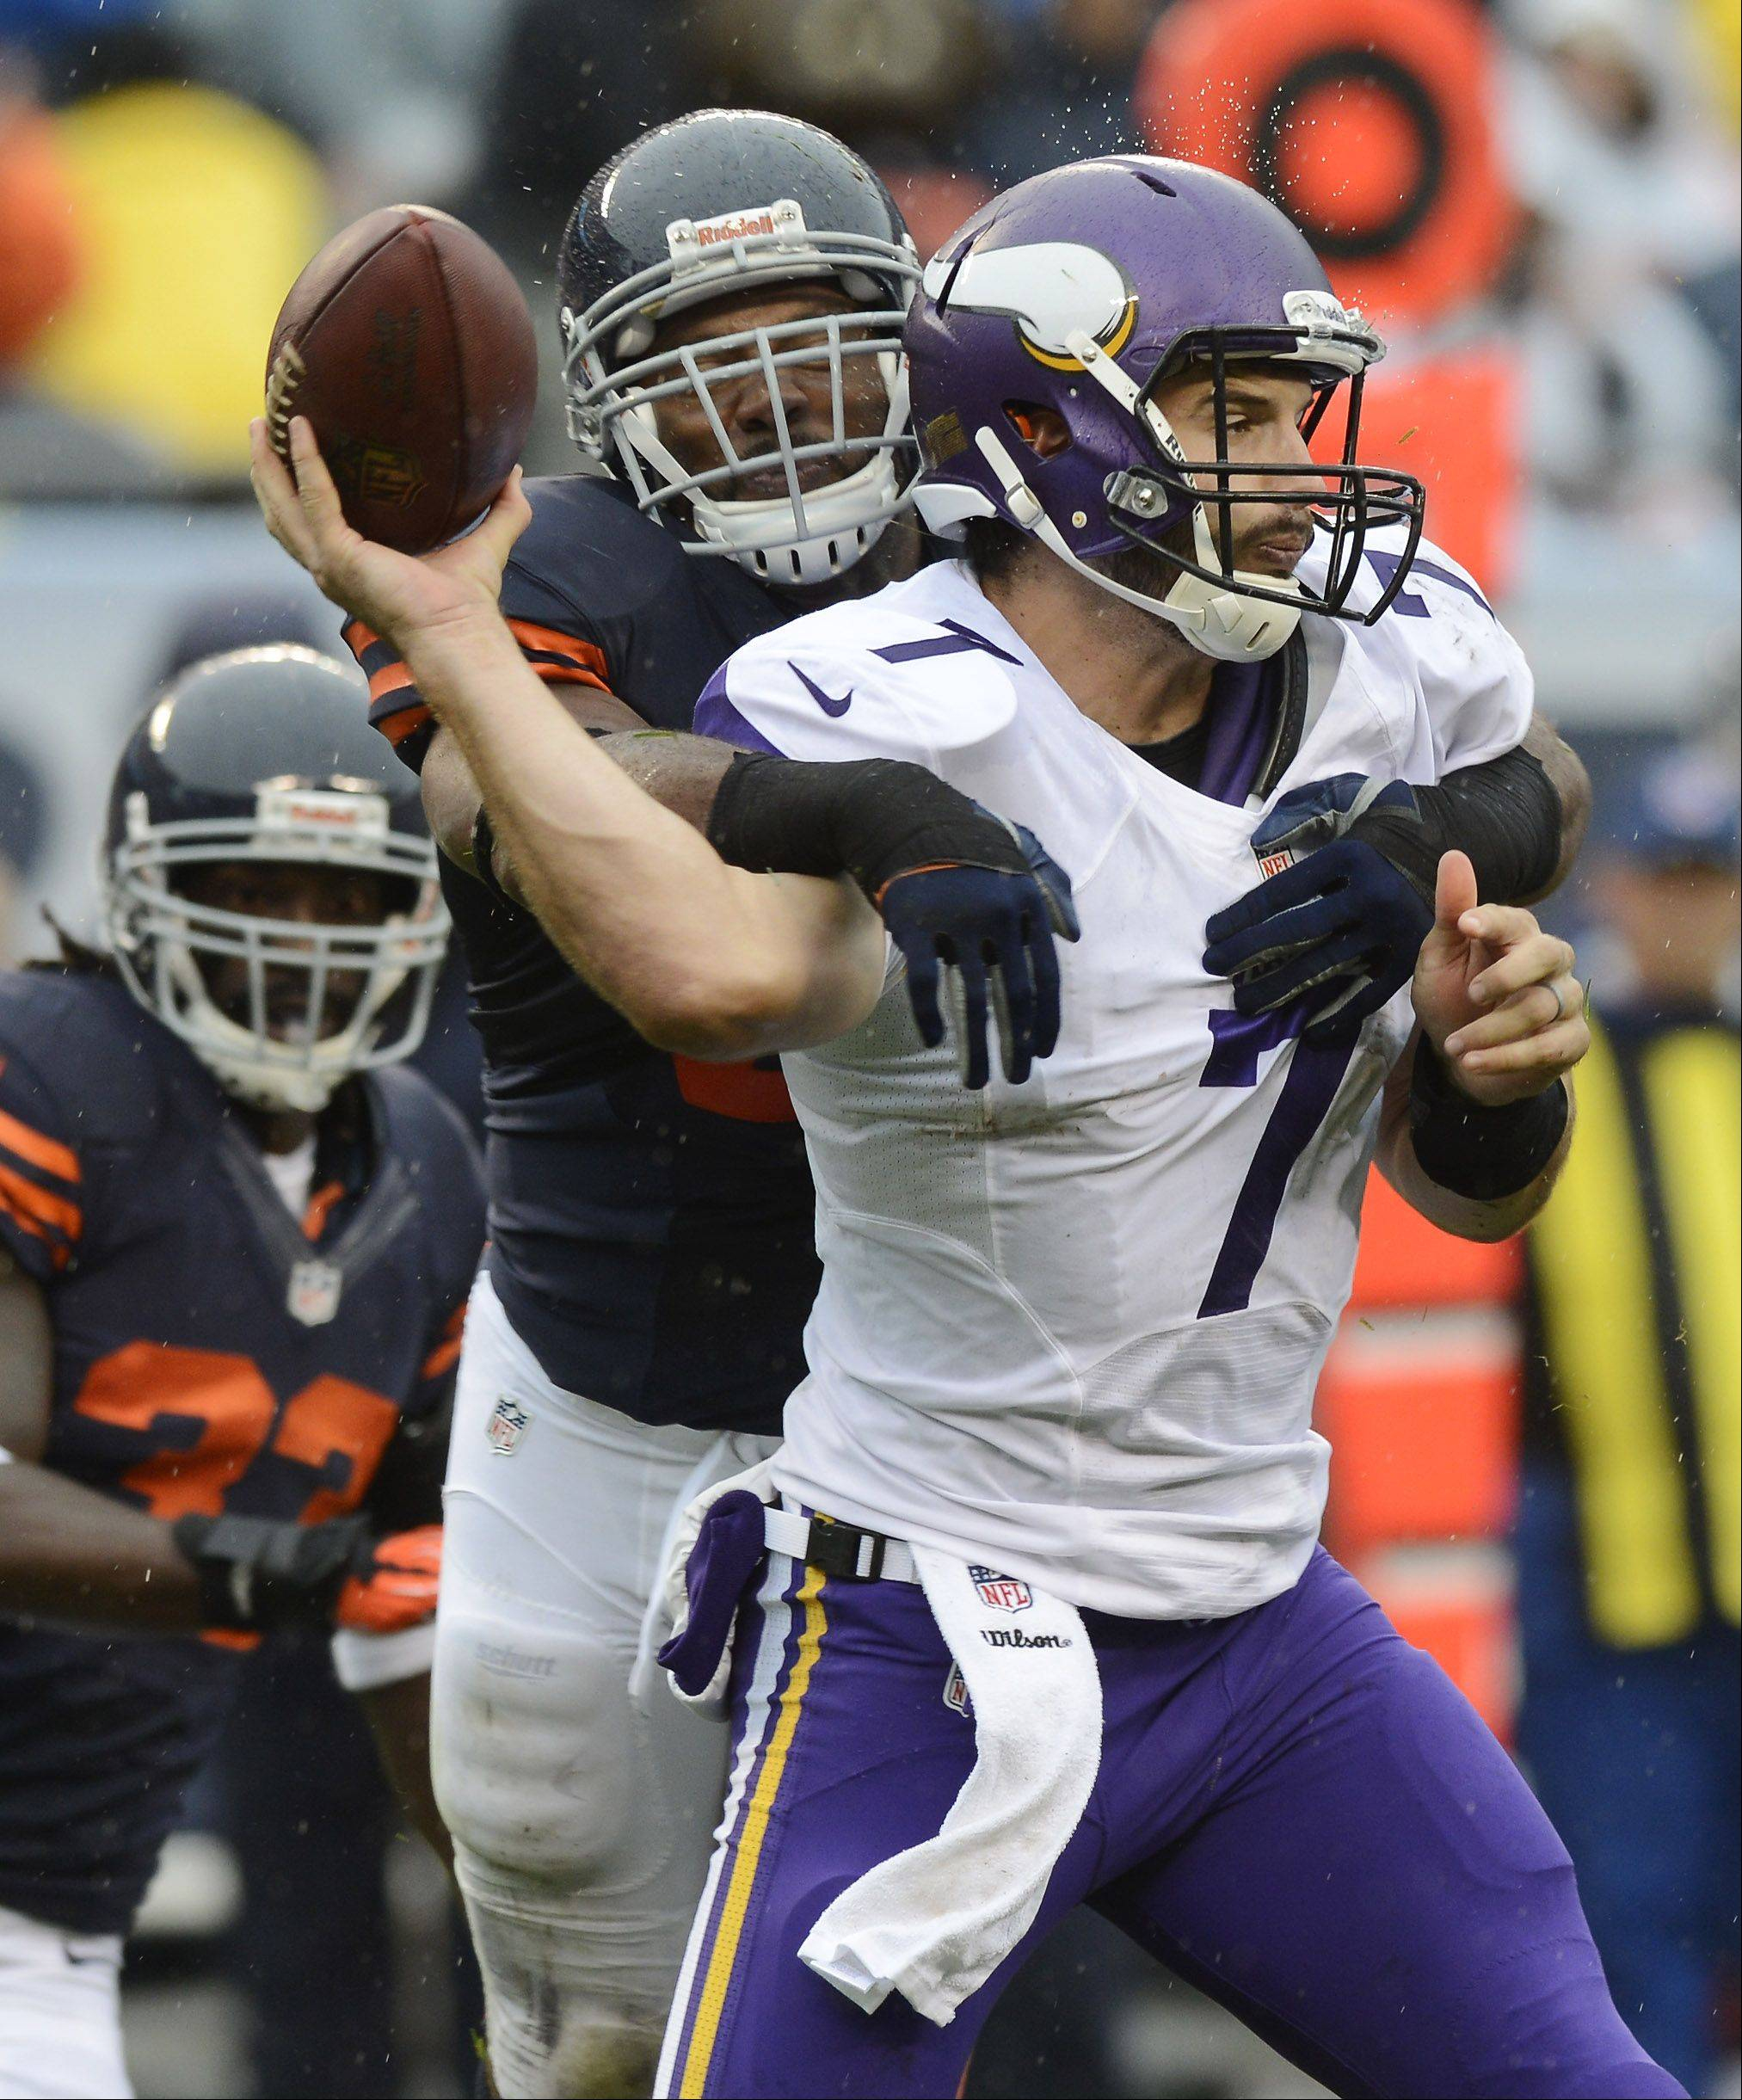 Chicago Bears outside linebacker Lance Briggs pressures Minnesota Vikings quarterback Christian Ponder during Sunday's game at Soldier Field.